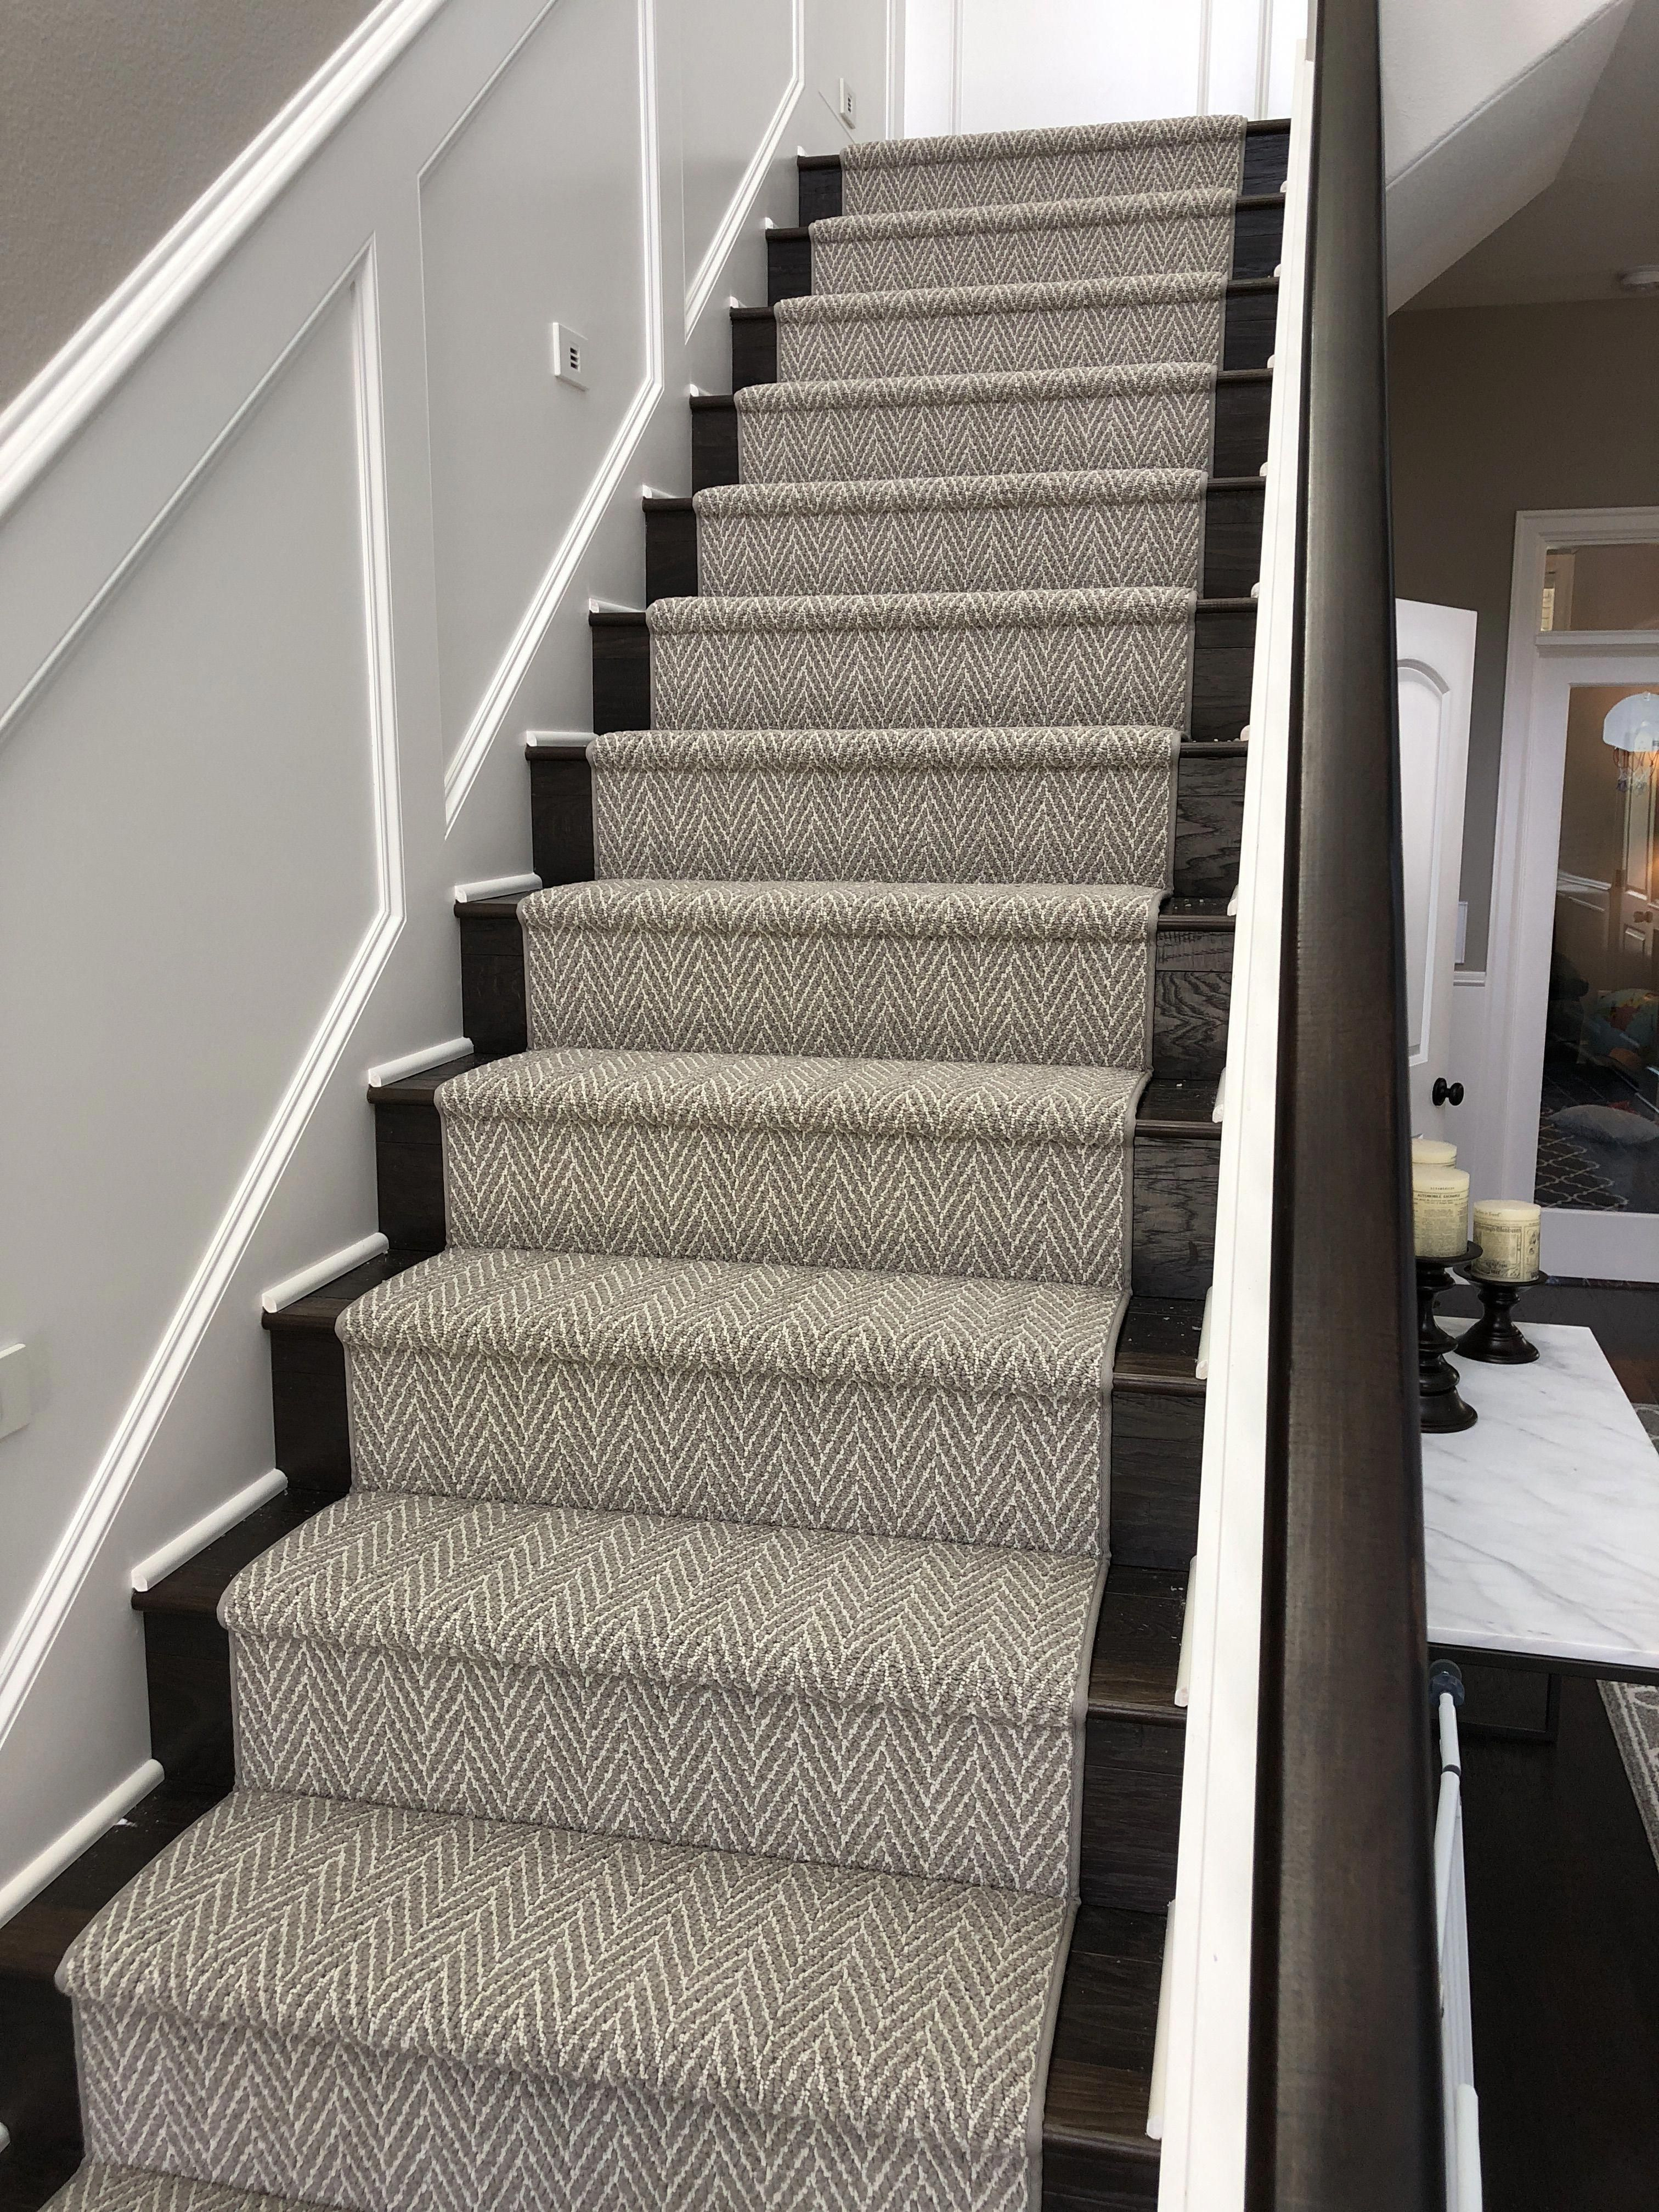 Carpet Runners For Sale Near Me Product ID4803091293